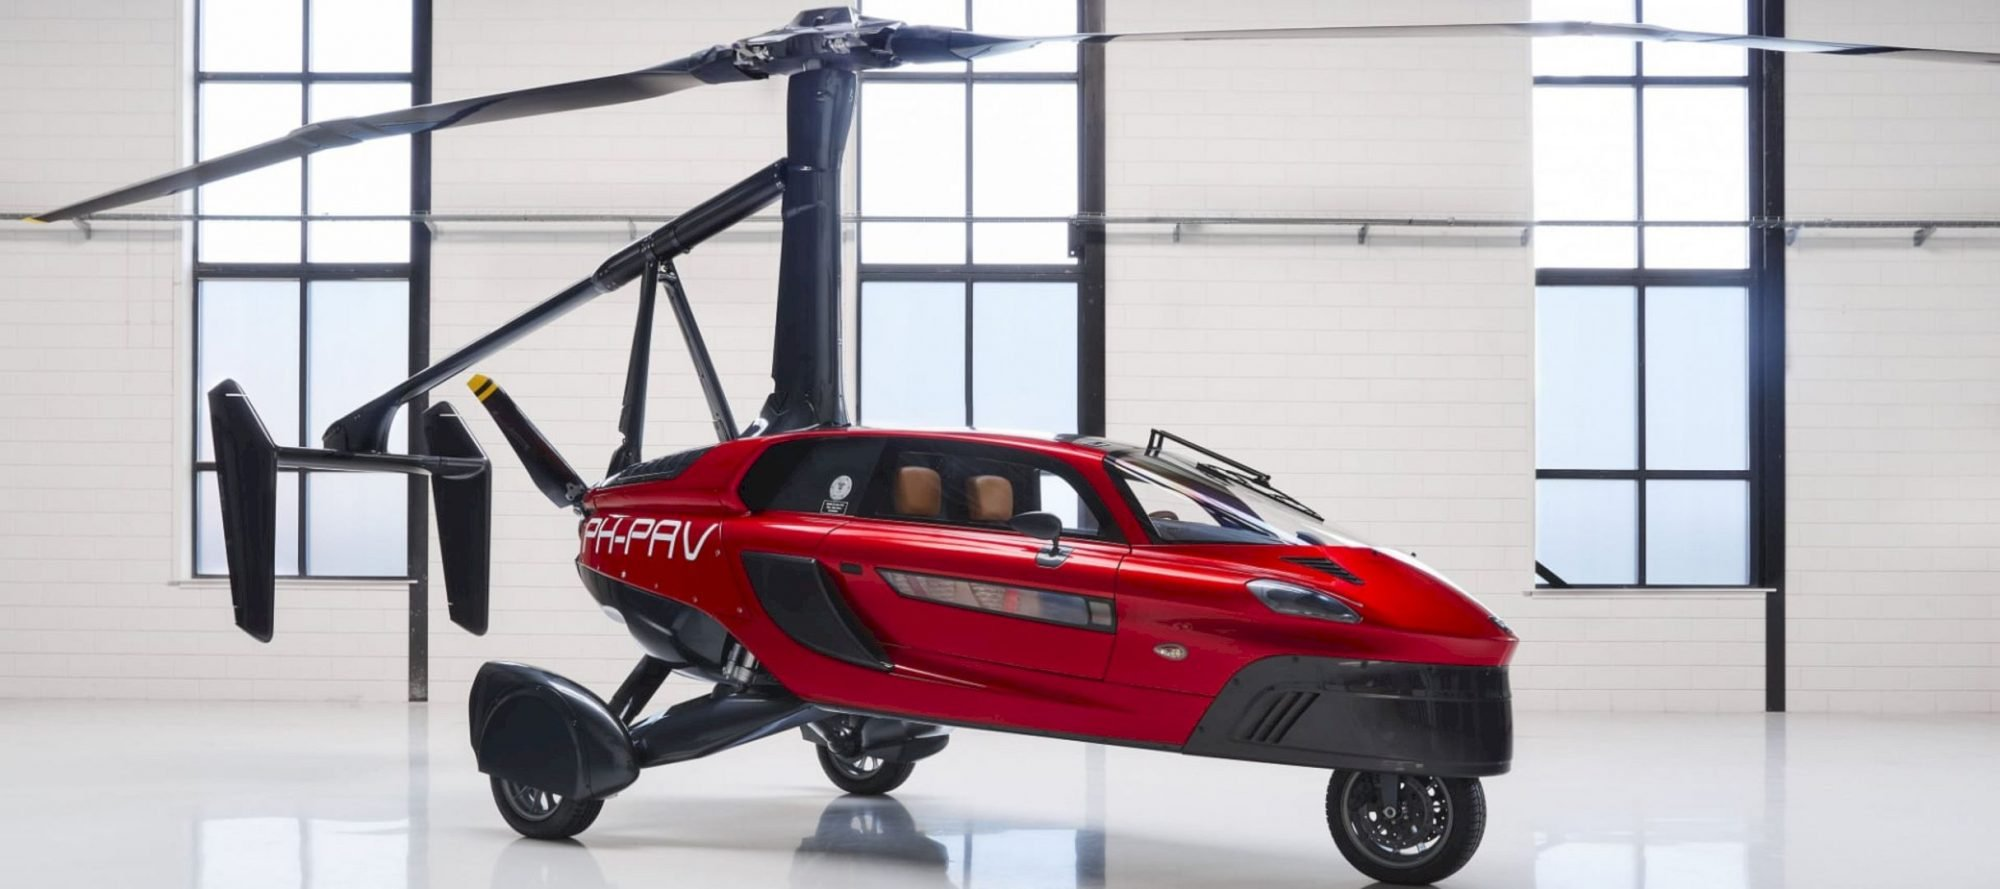 PAL-V Liberty: The Groundbreaking Product that Inaugurates the Age of the Flying Car